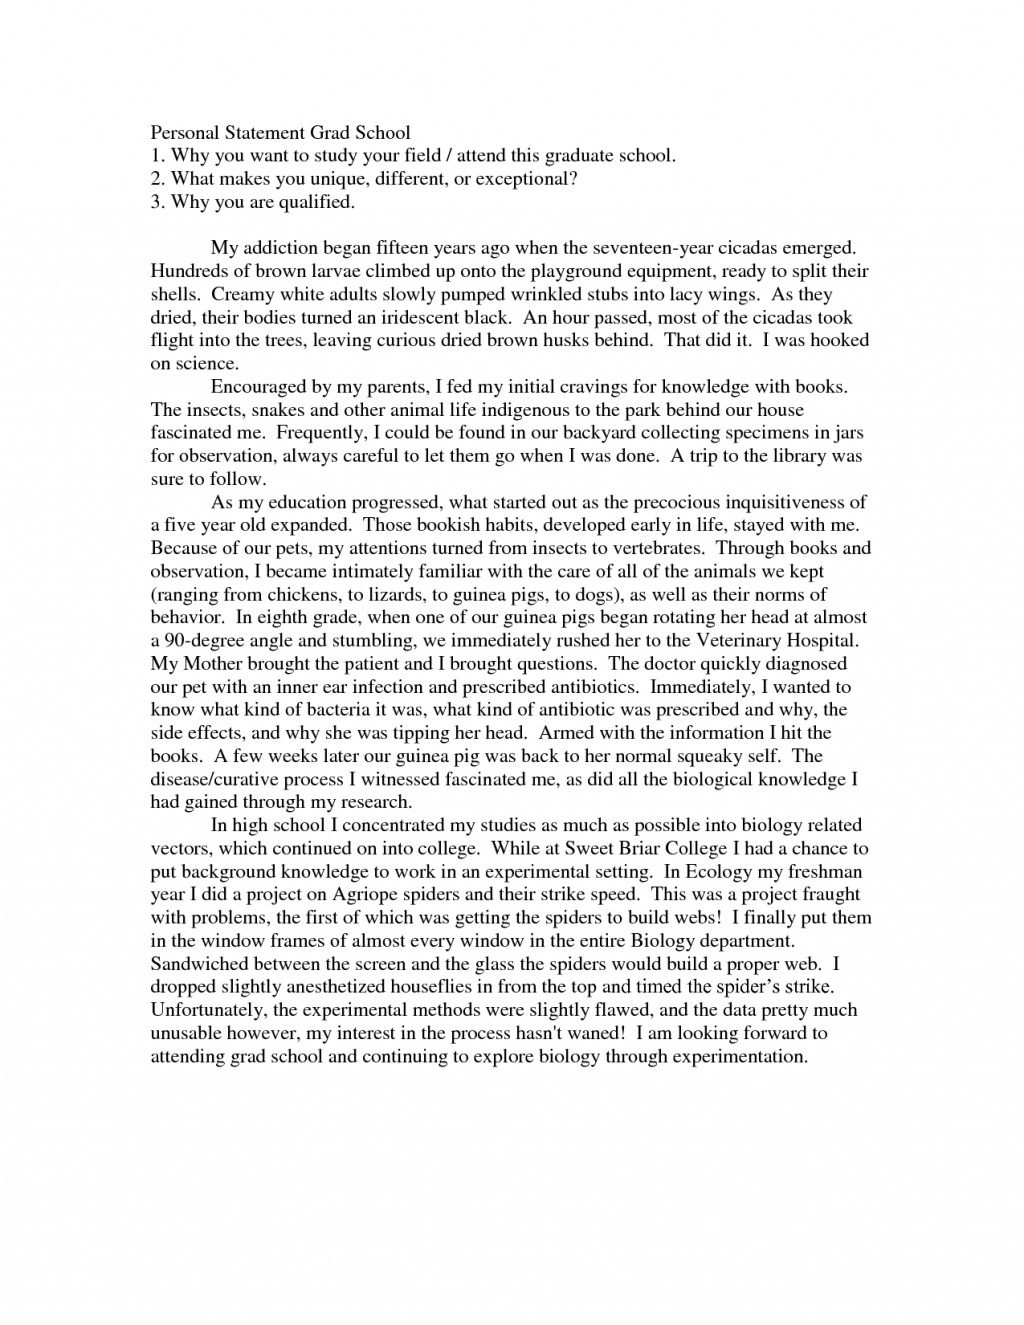 011 Best Ideas Of Sample Personal Statements Graduate School Simple Essay Collections Isaac Asimov Essays Awful On Creativity Intelligence Large